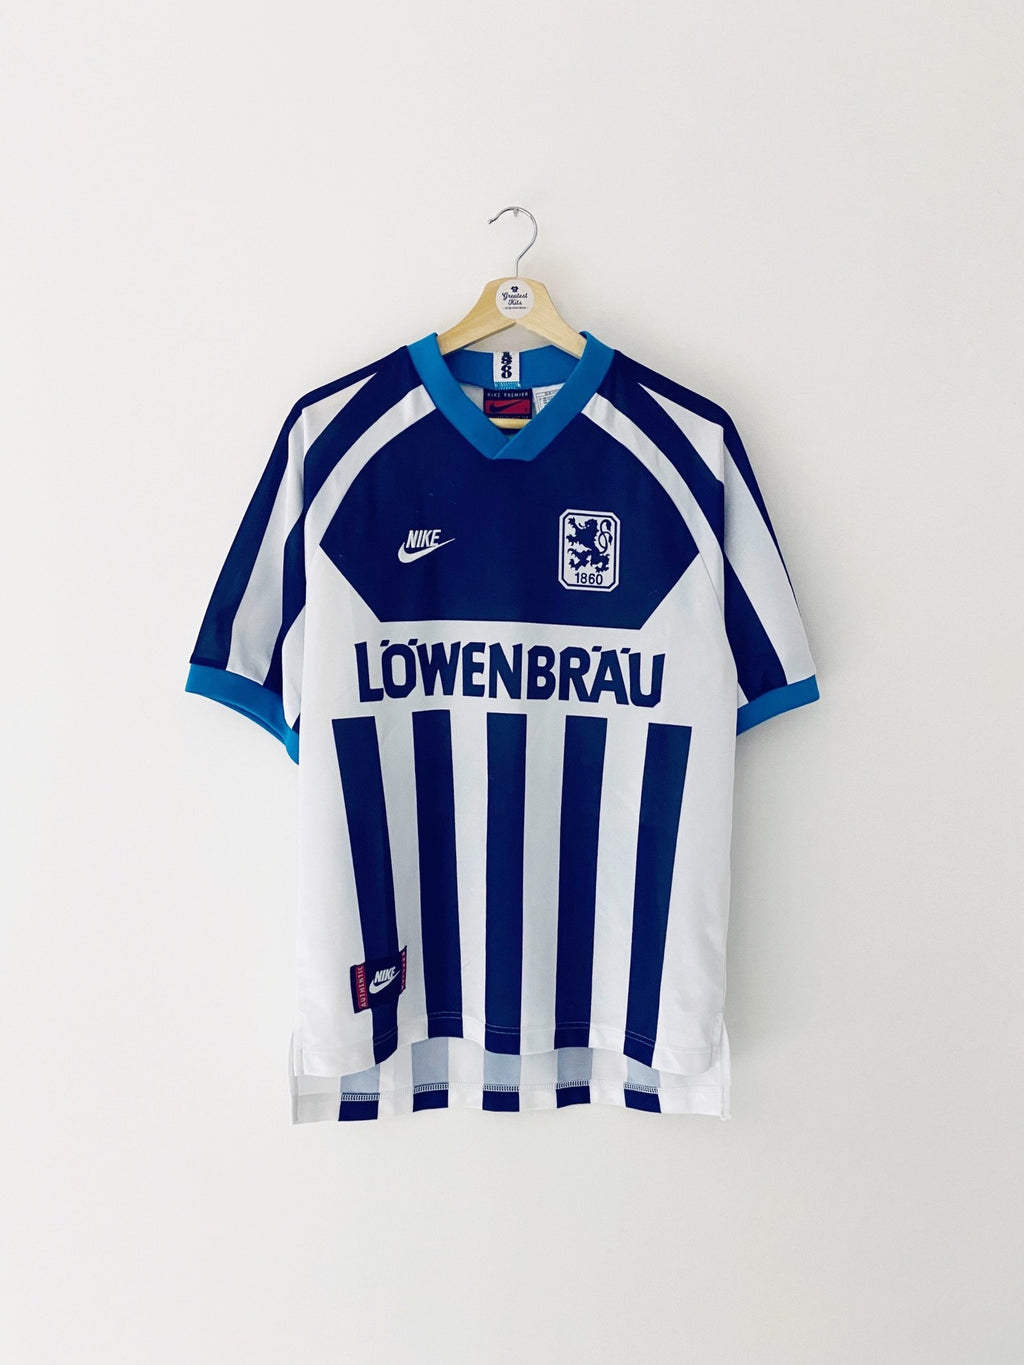 1995/96 1860 Munich Away Shirt (S) 7/10